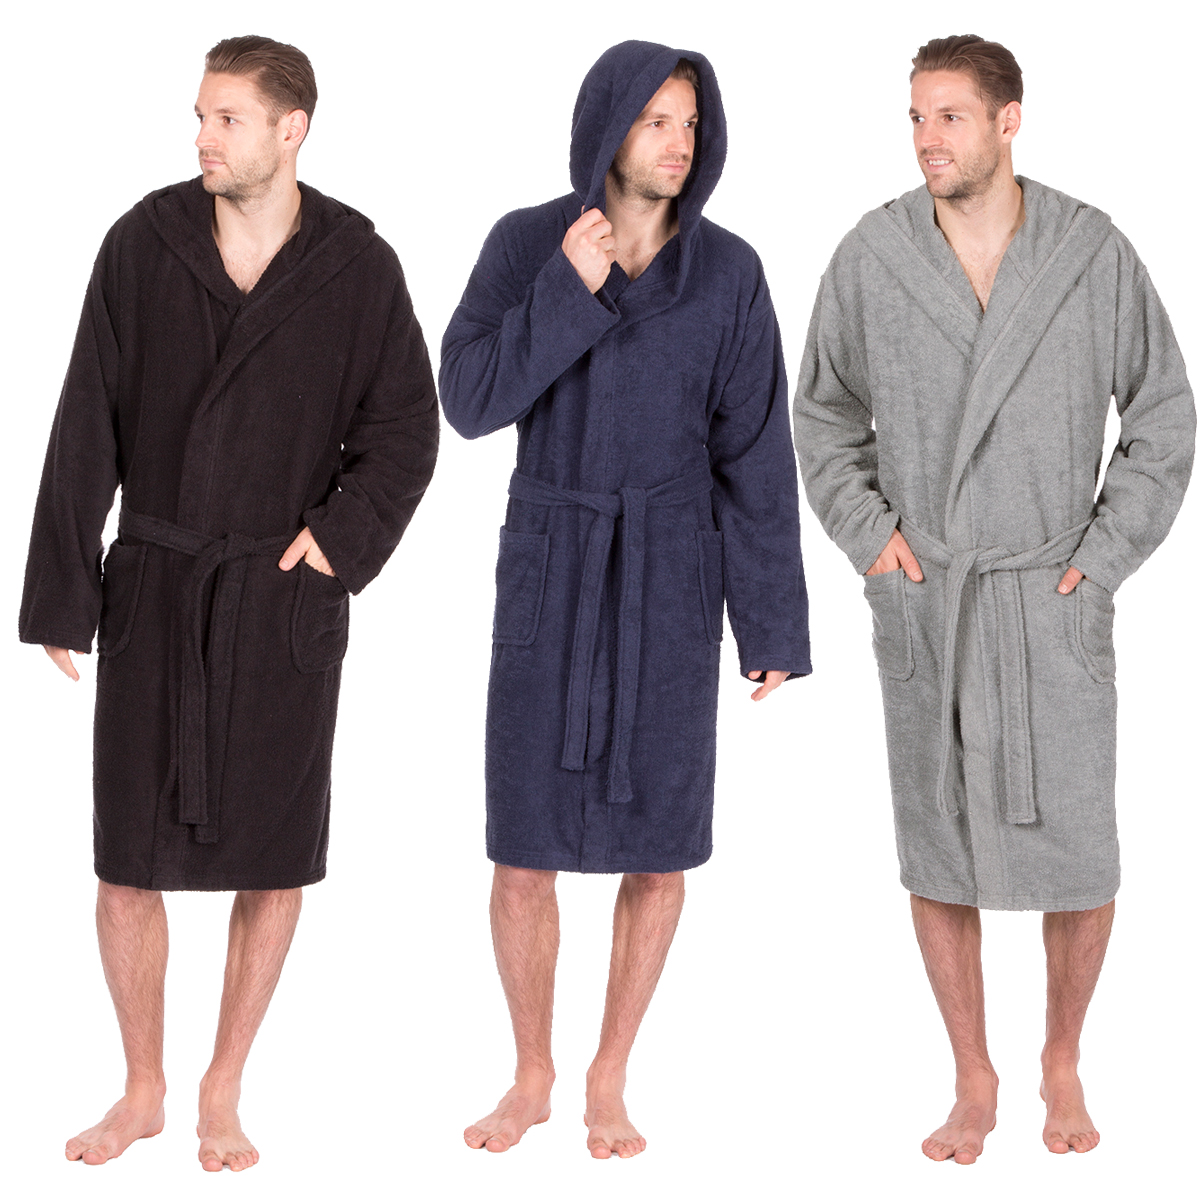 pierre roche mens terry cloth towelling bath robe with hood cotton dressing gown ebay. Black Bedroom Furniture Sets. Home Design Ideas